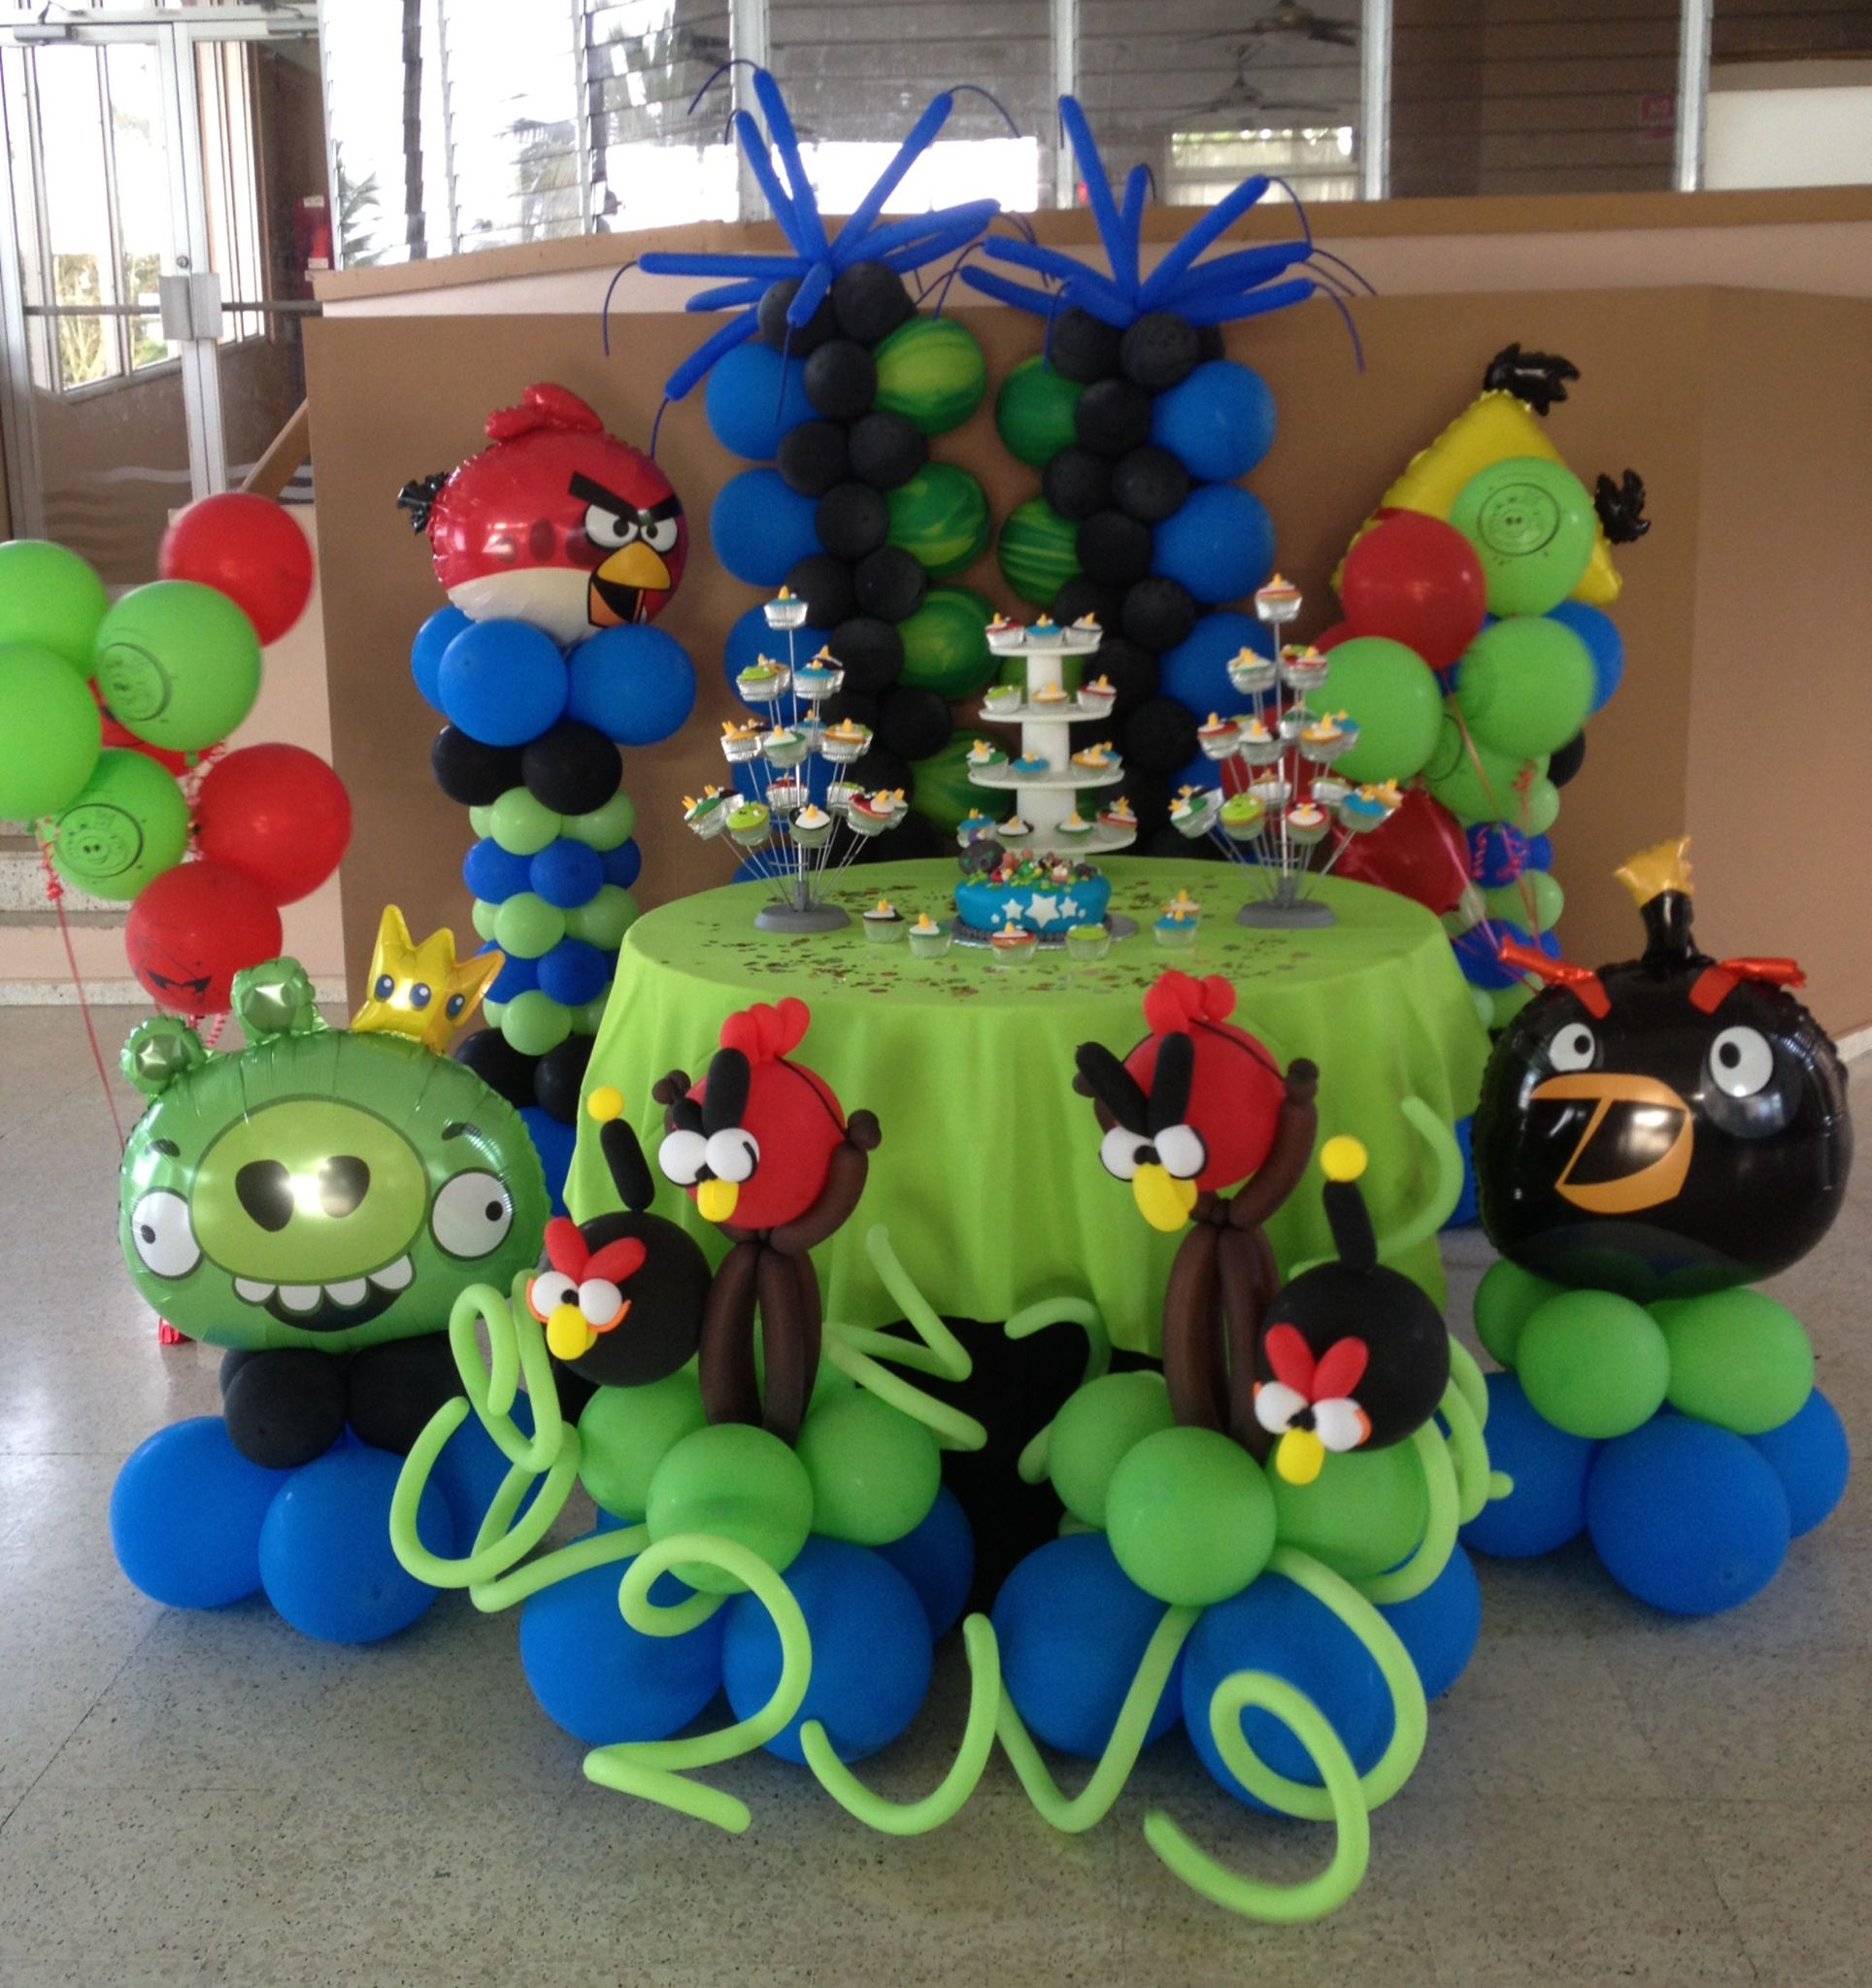 Southern blue celebrations angry birds party ideas for 7 star balloon decoration